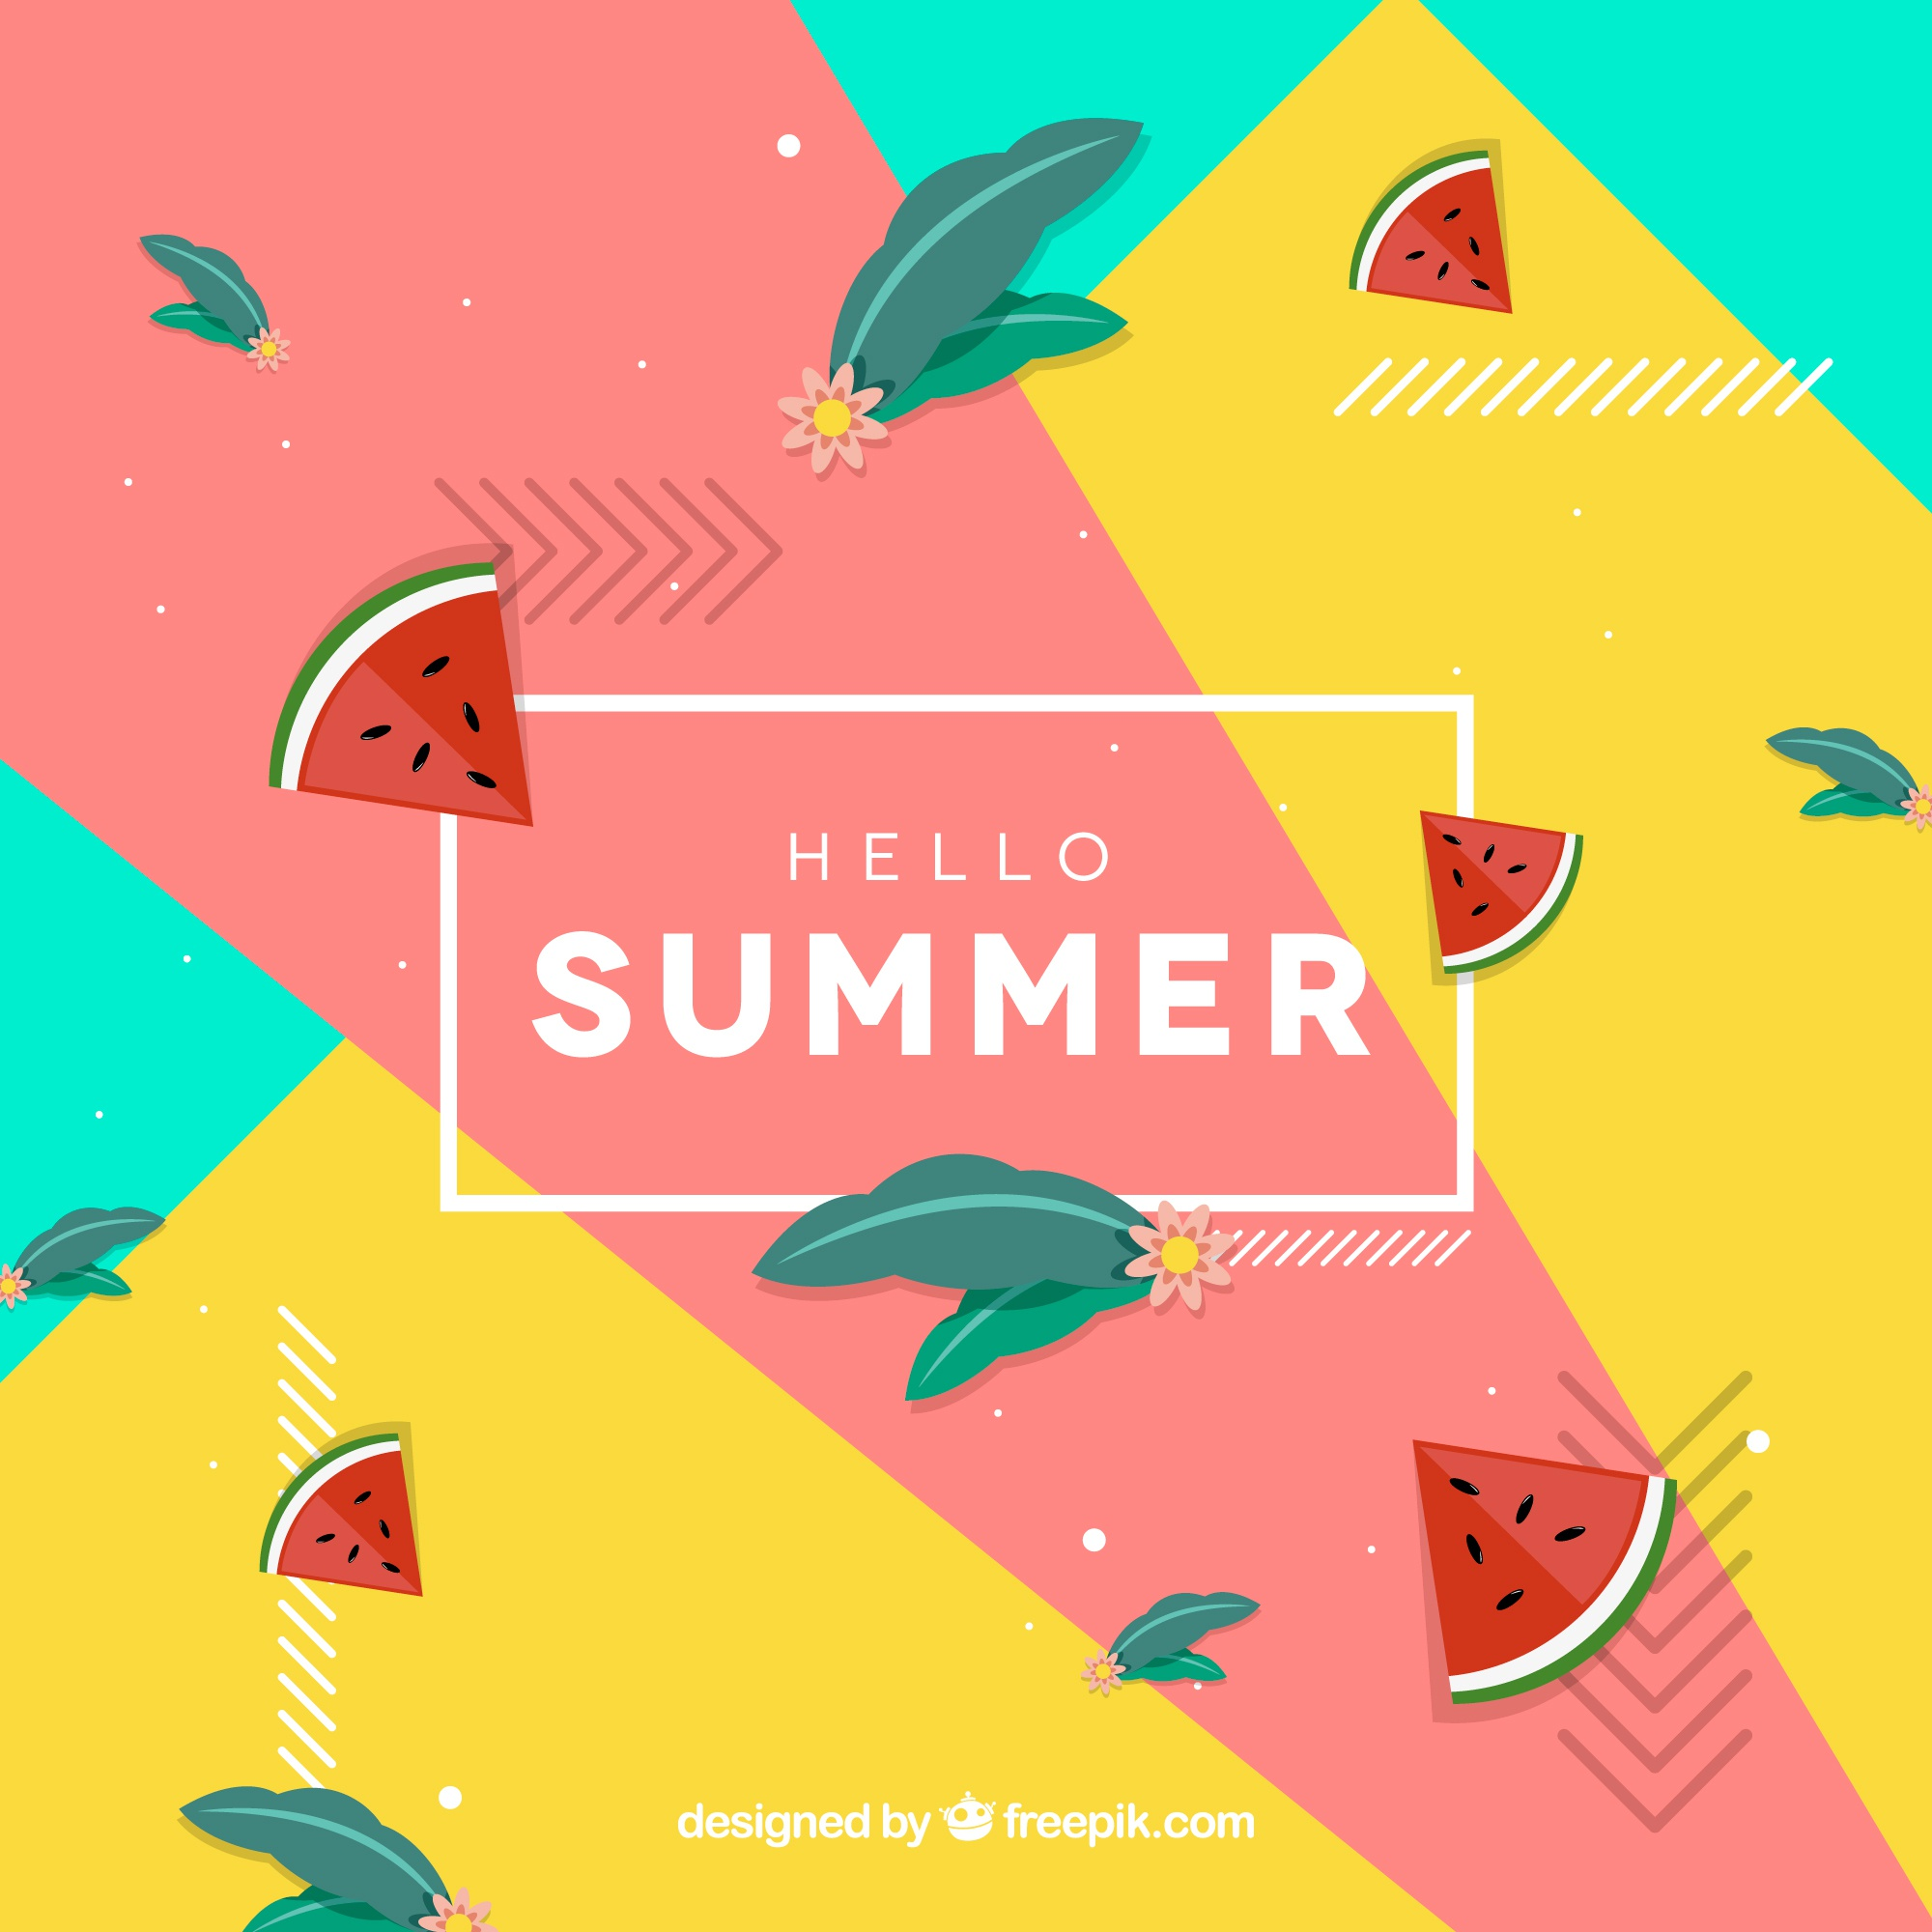 Hello summer background with watermelons